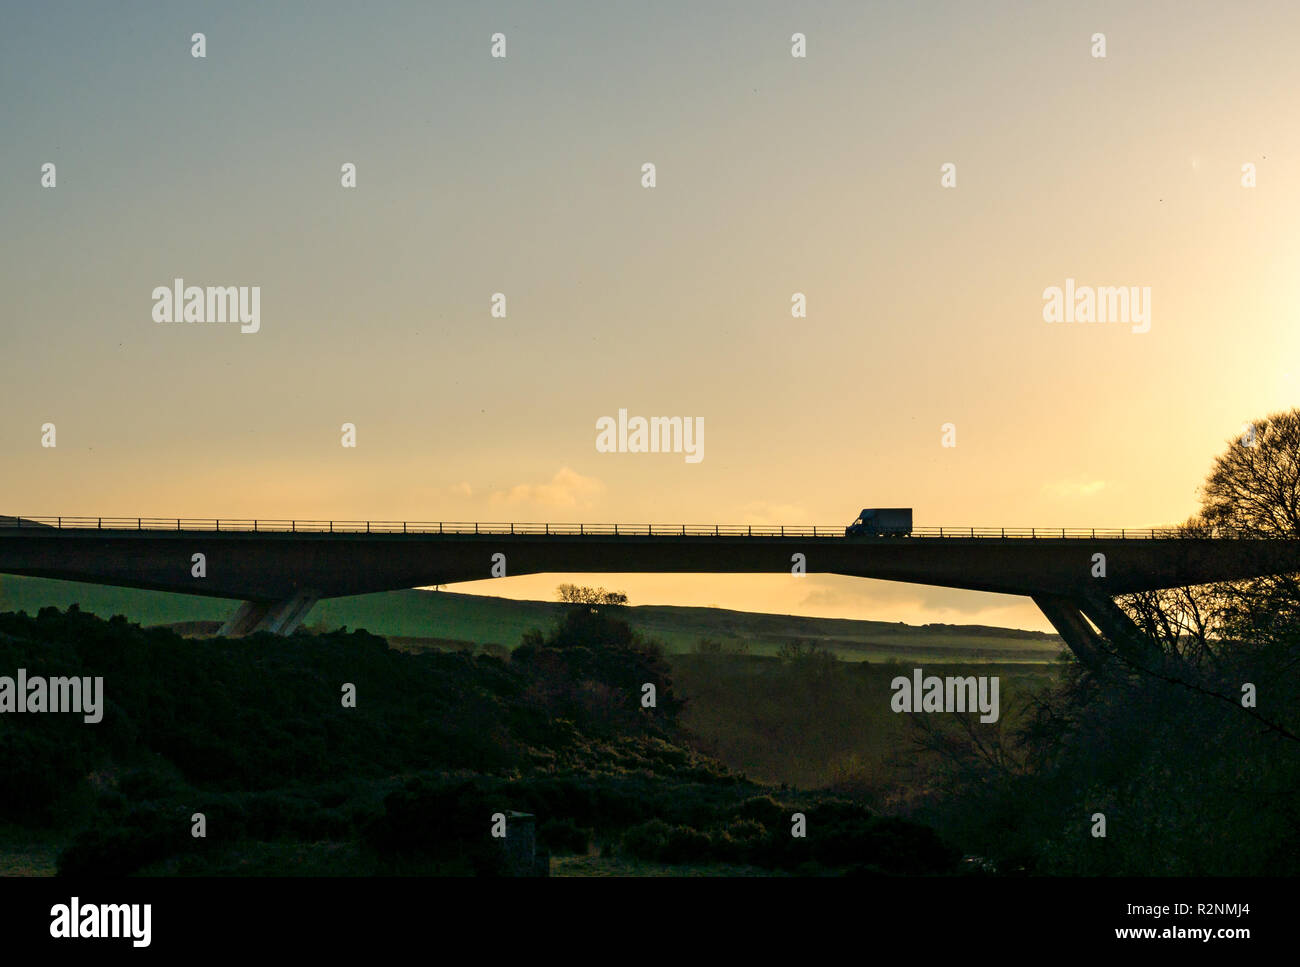 Van driving on A1 River Tyne concrete flyover bridge silhouette by Balfour Beatty Civil Engineering, East Lothian, Scotland, UK - Stock Image